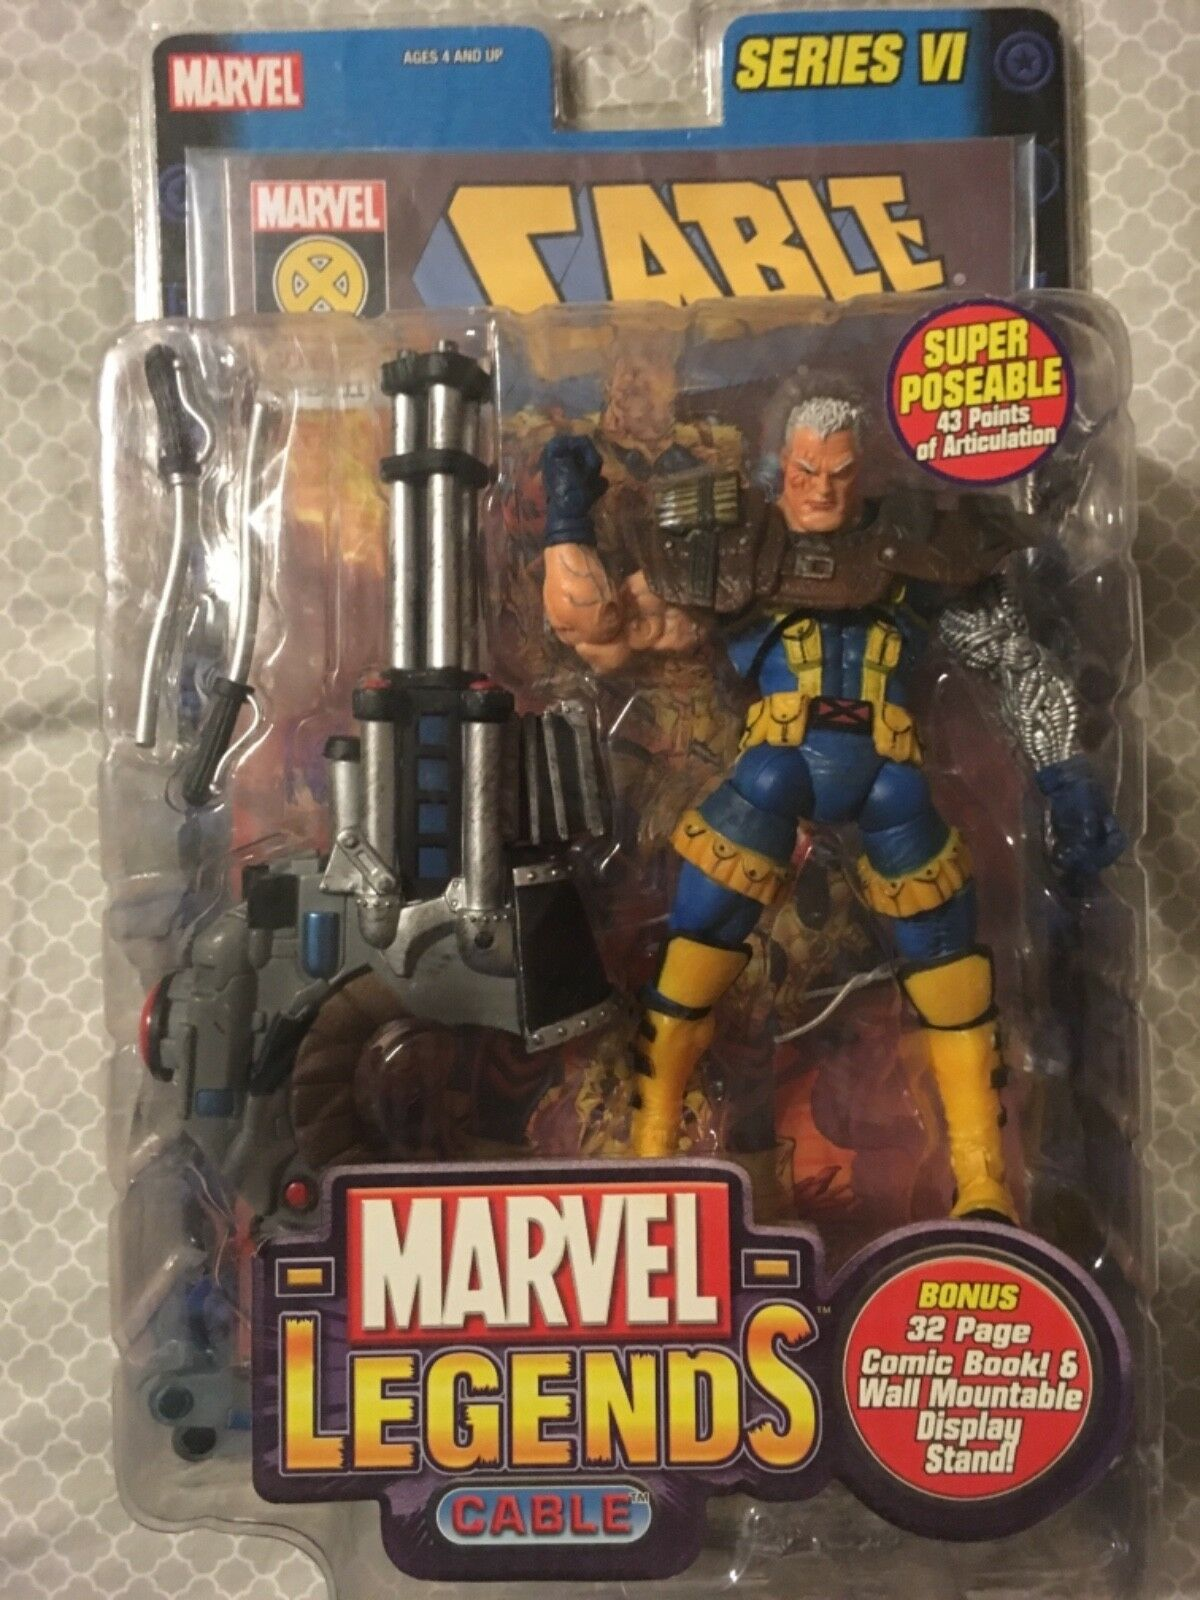 Marvel Legends Cable Series VI